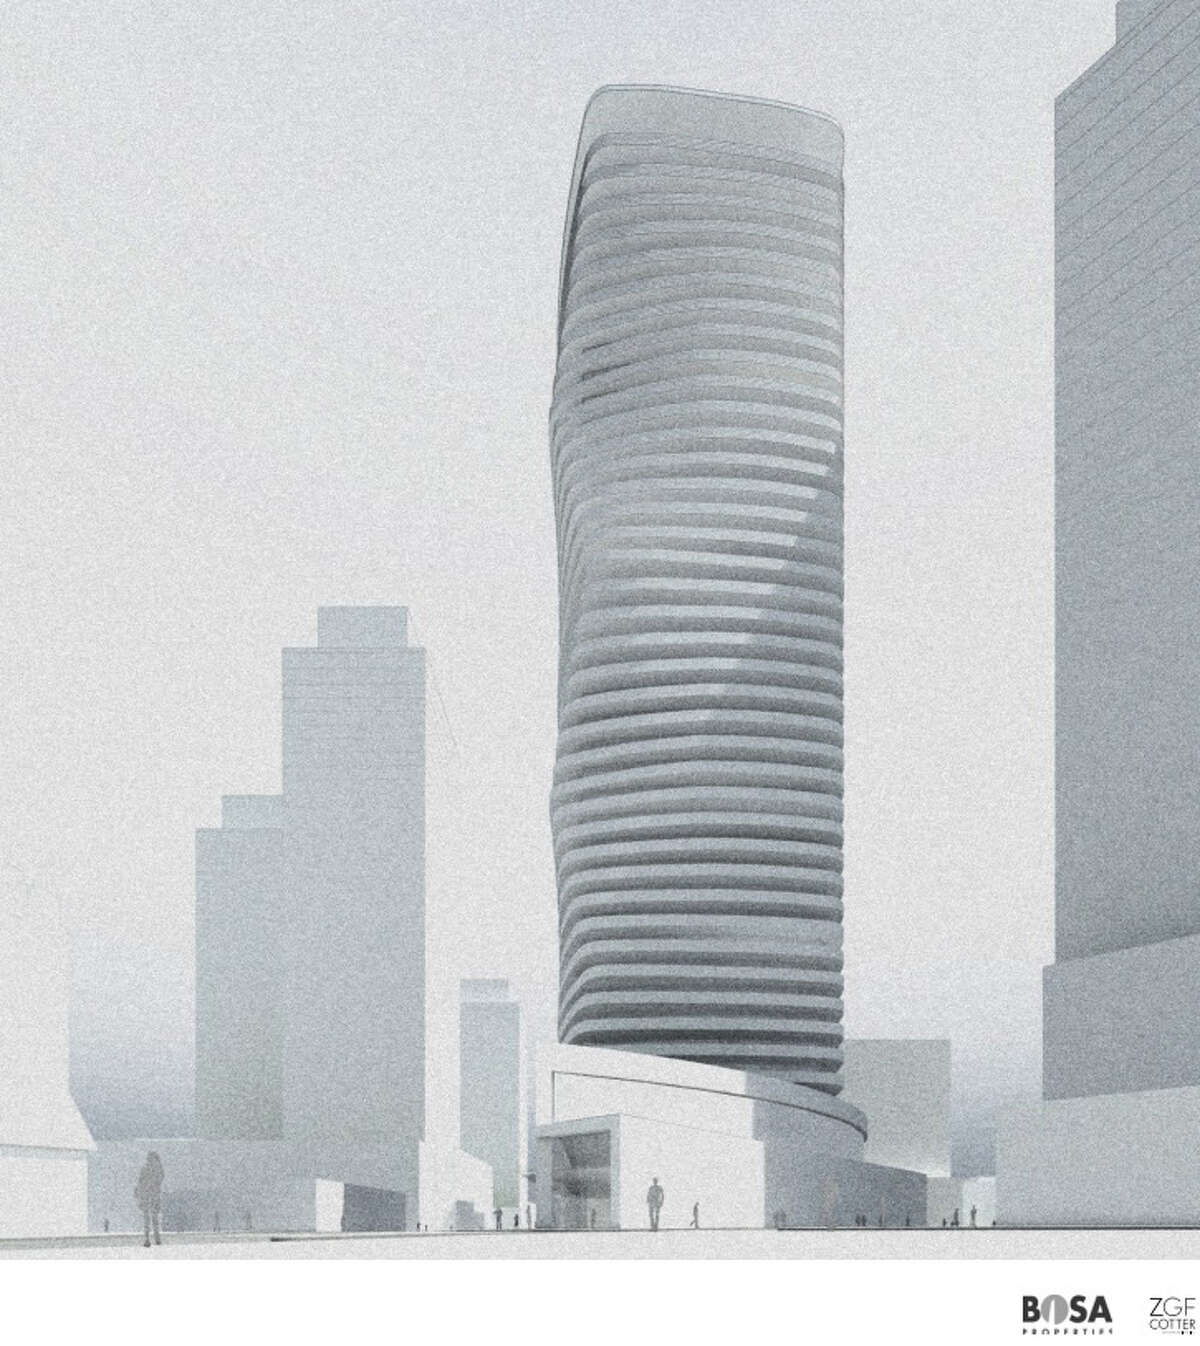 This rendering shows the twisty-turny exterior of the the proposed 41-story residential tower at Denny Way and Fairview Avenue.